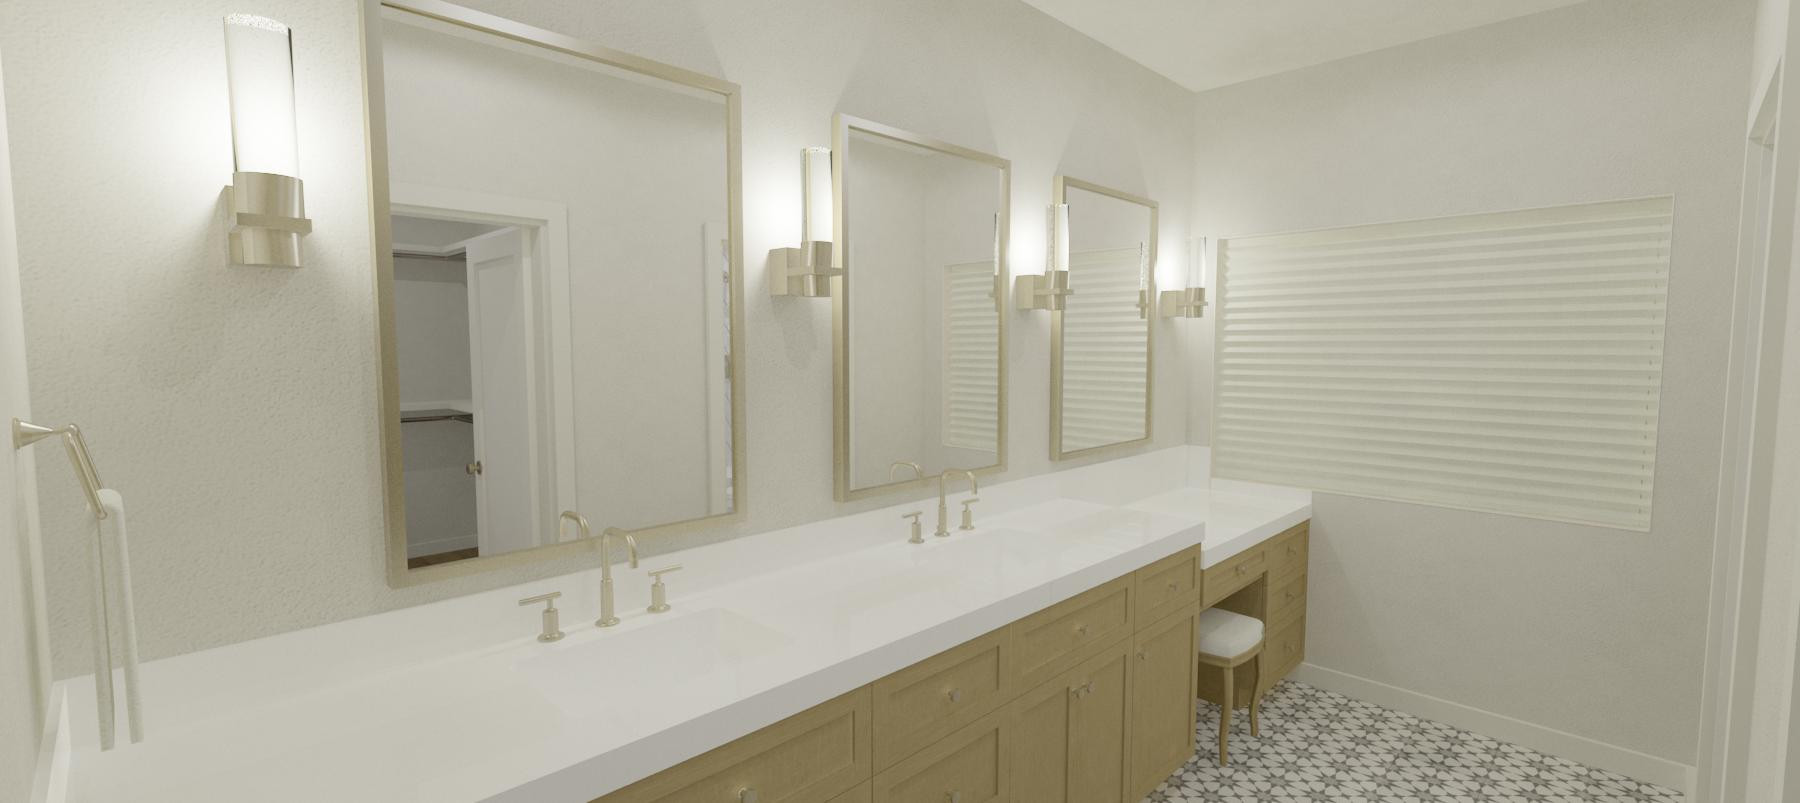 Master Suite (OPT 3)_Page_2.jpg